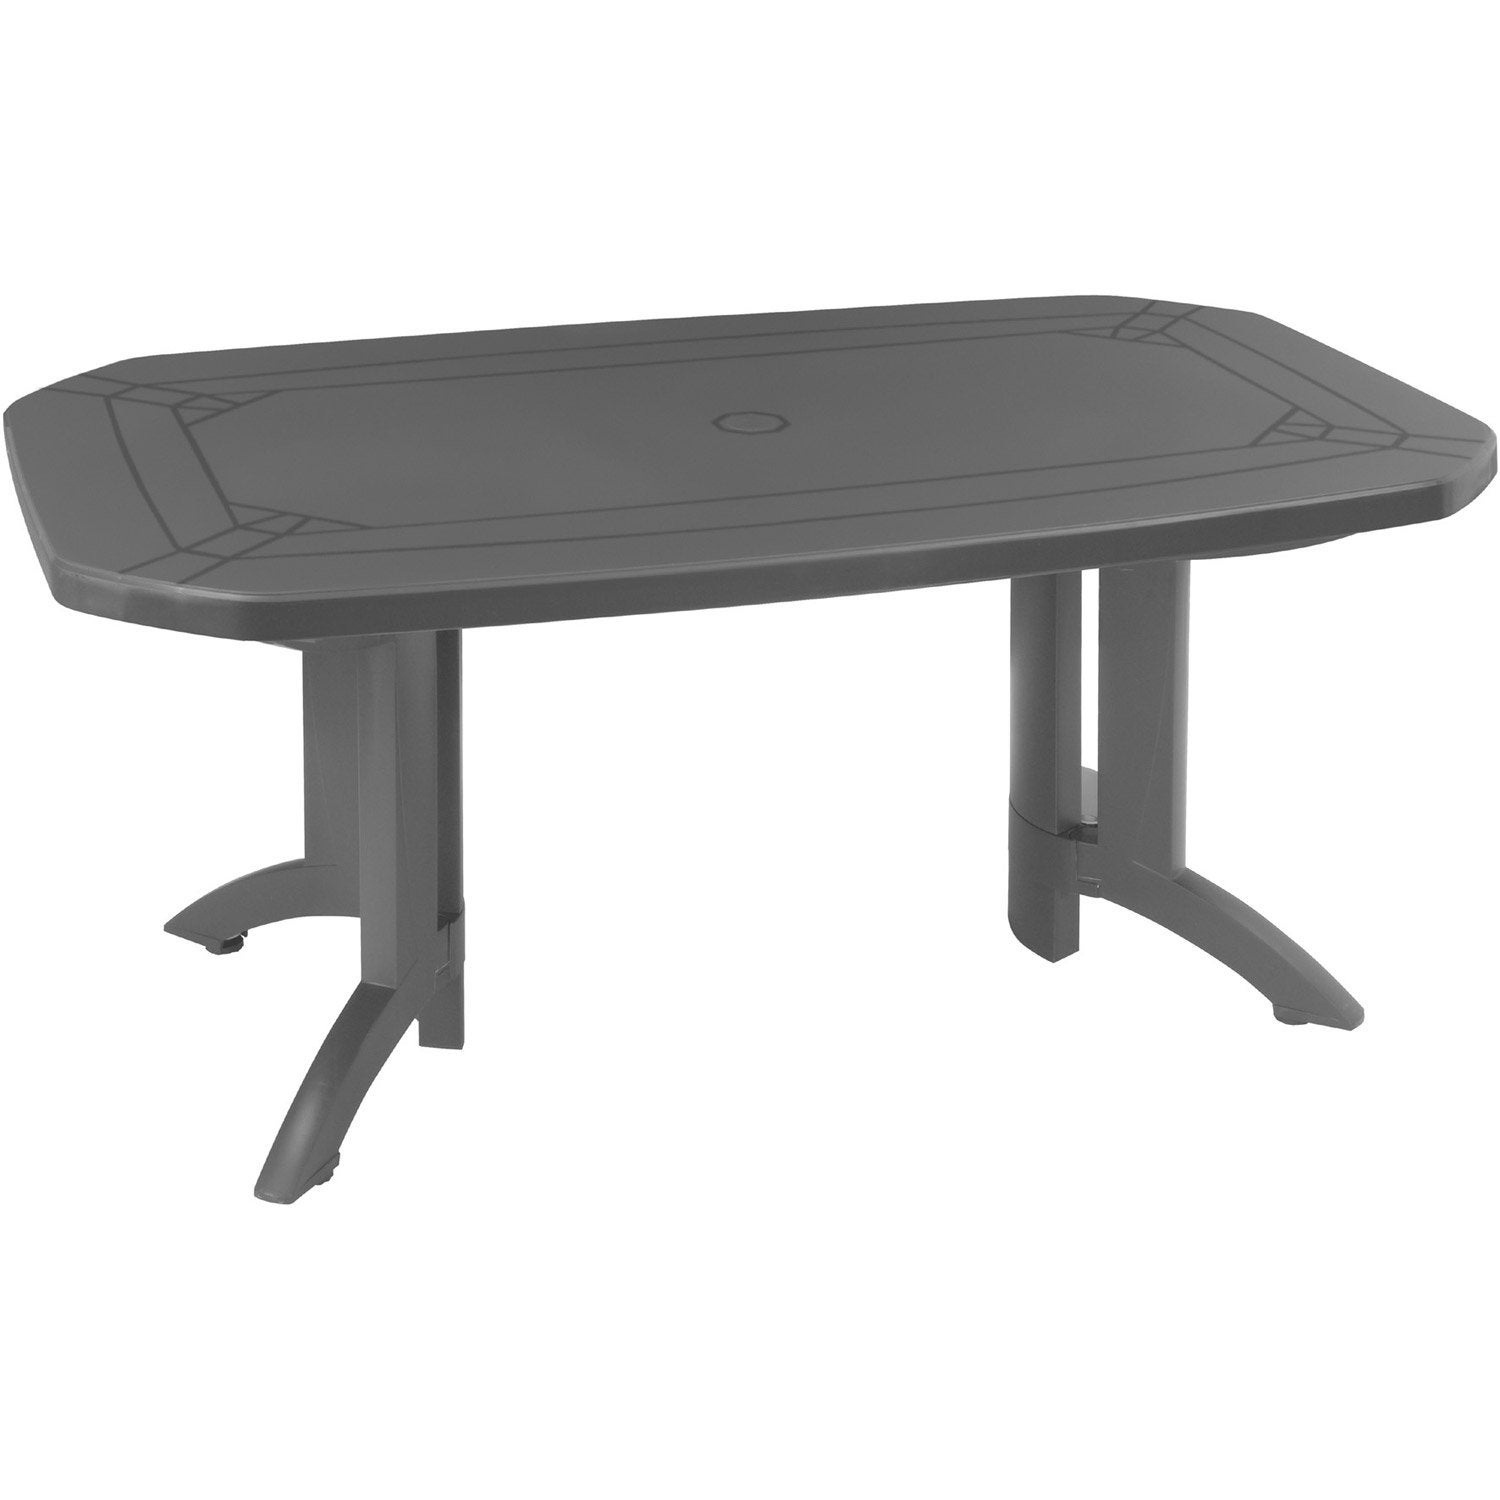 Leroy Merlin Table De Jardin. table de jardin aluminium leroy merlin ...